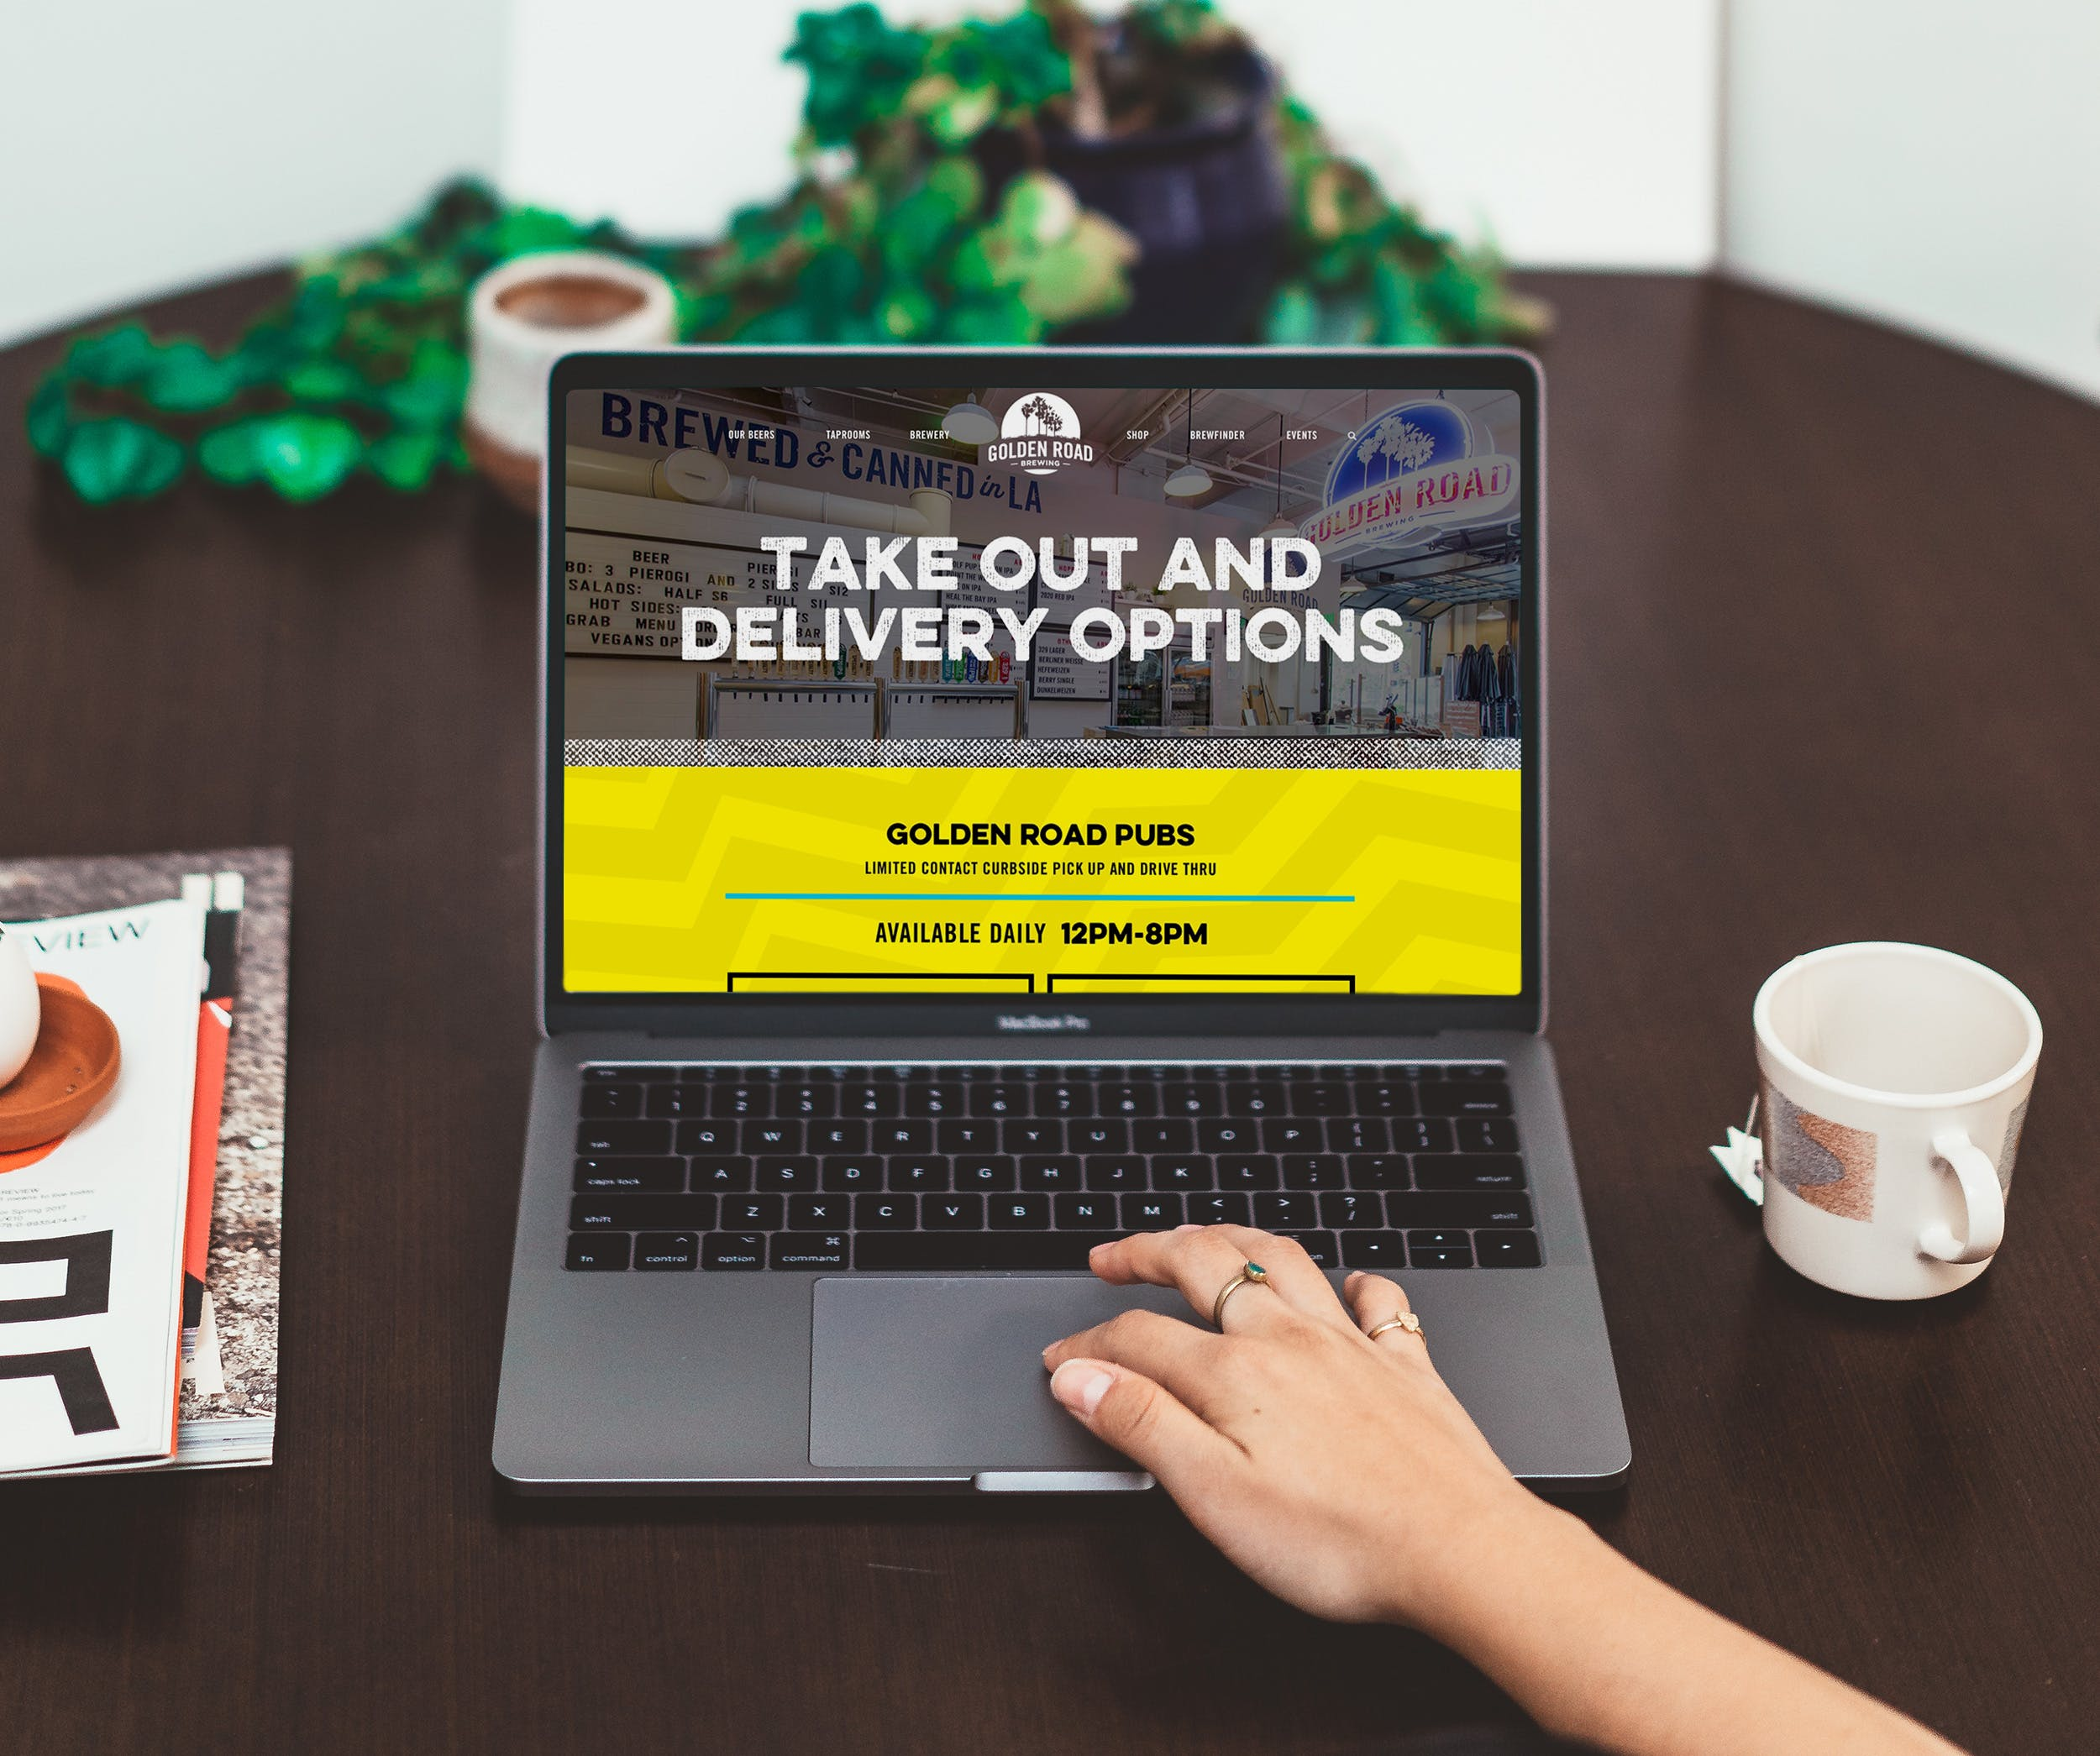 A hand is on the scroll pad of a laptop with the Golden Road homepage. There is a coffee mug to the right of the laptop. A plant in the background.